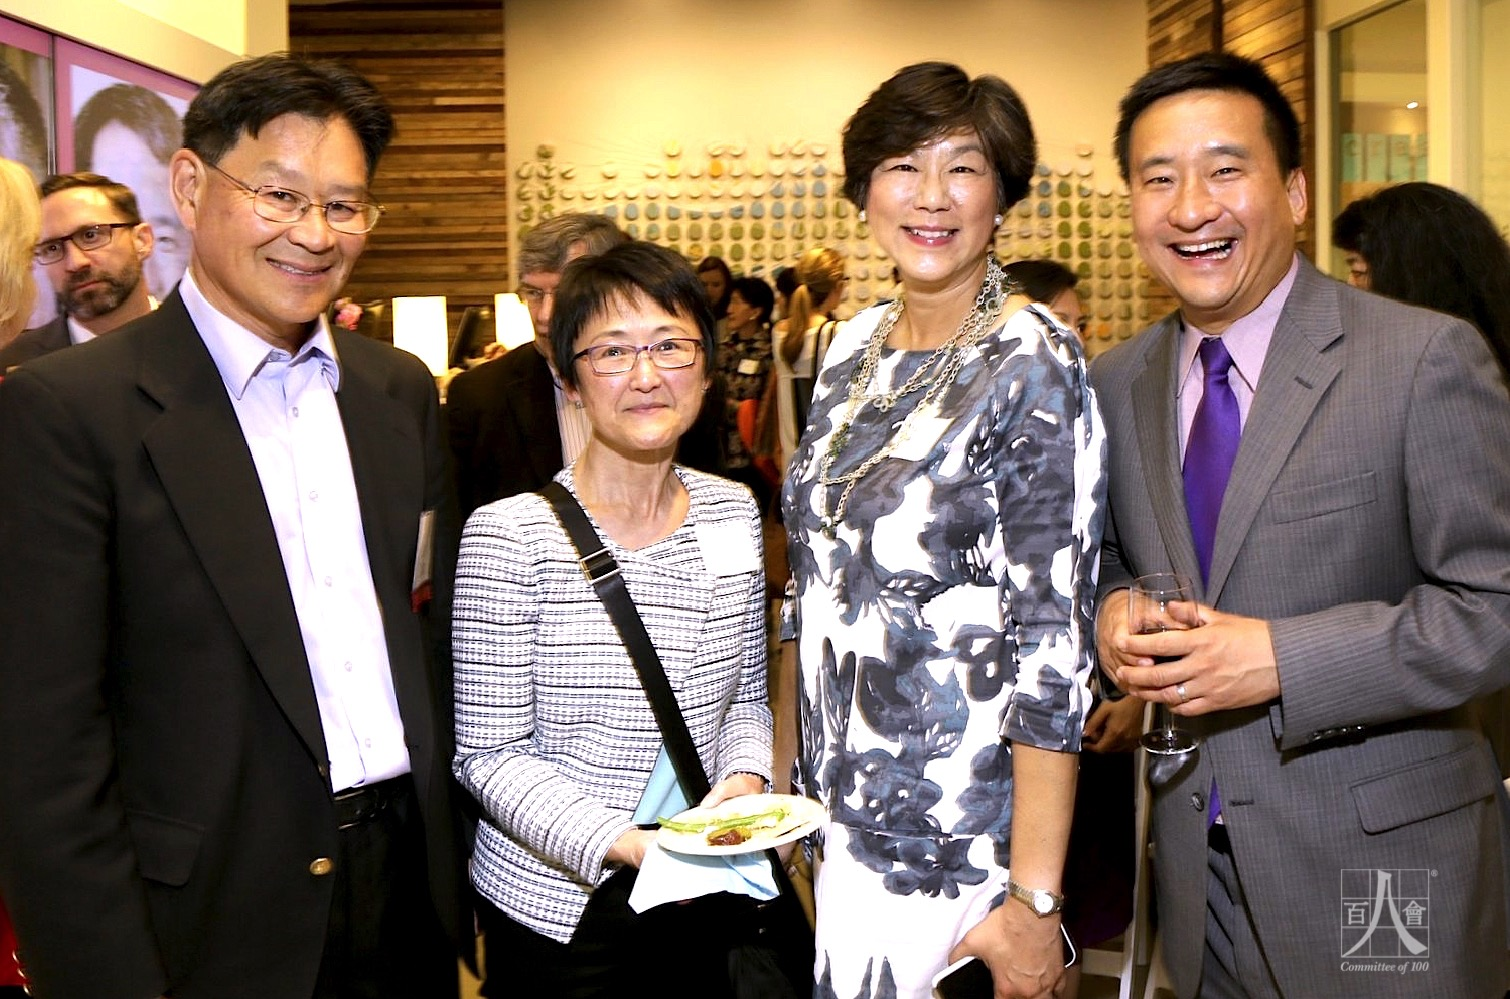 07162015 SF Gordon Chang Event 76